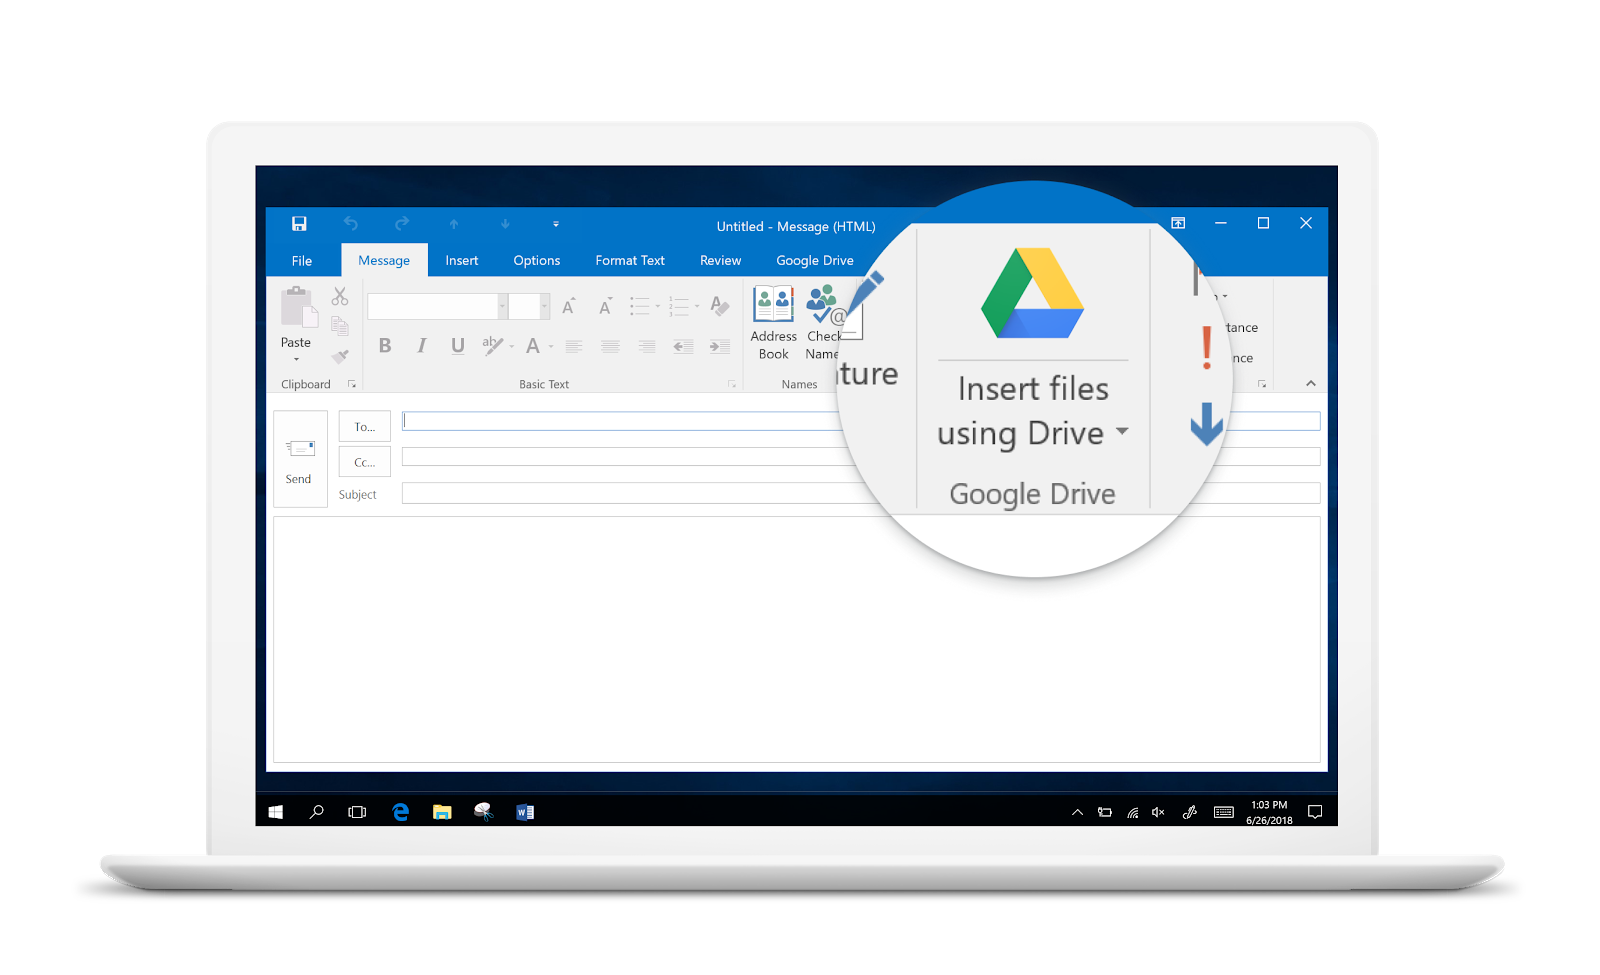 G Suite Updates Blog: Launching new Google Drive / Microsoft Outlook